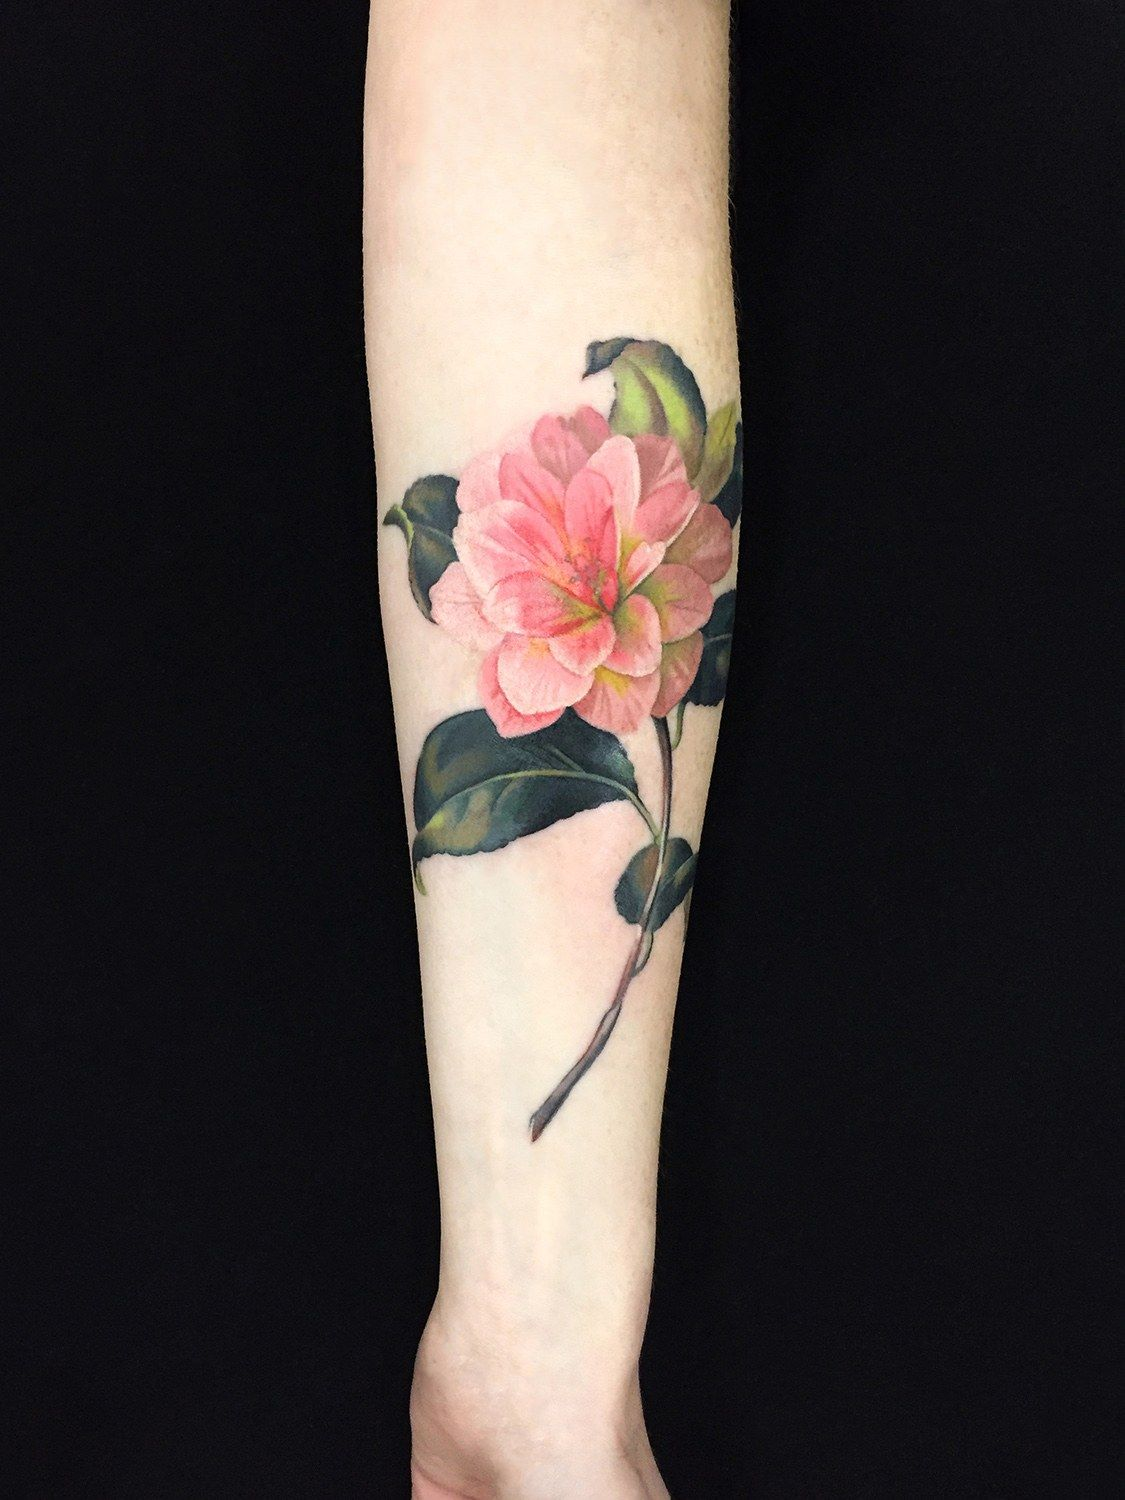 This New York Tattoo Artist Is Inking A Love Poem Onto 30 Strangers For Valentine S Day Floral Tattoo Watercolor Tattoo Artists Watercolor Tattoo